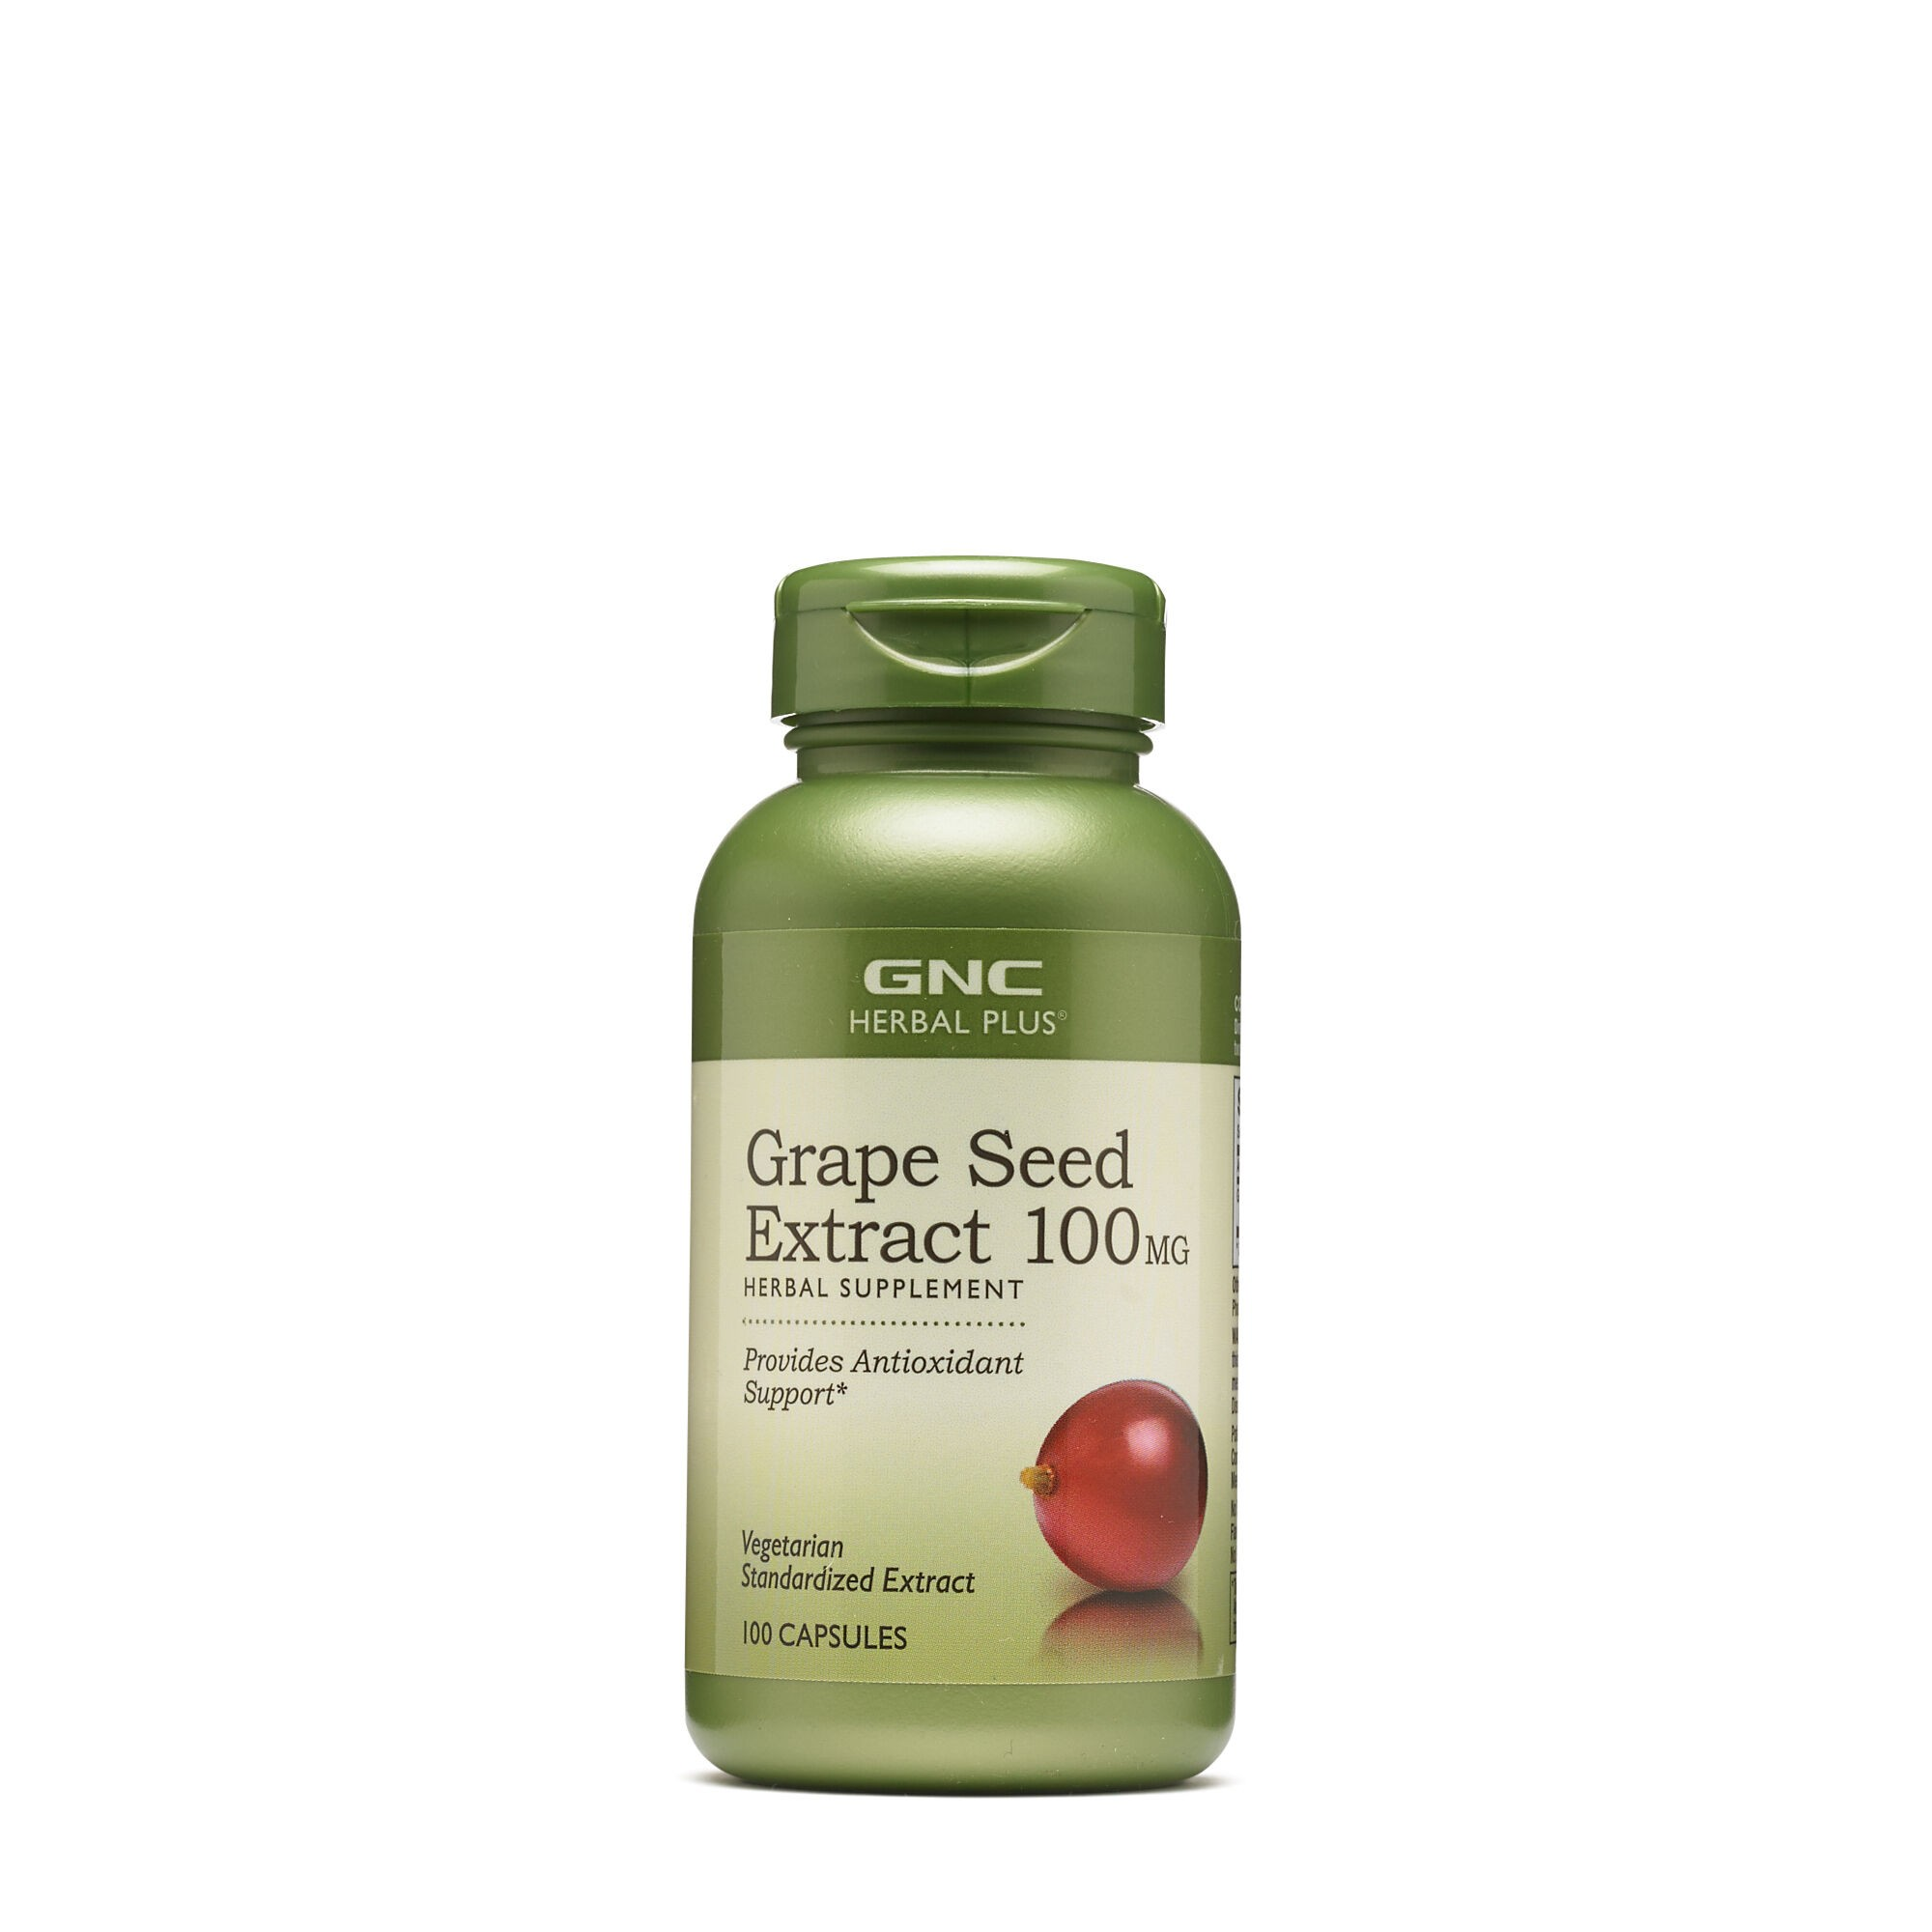 GNC Herbal Plus® Grape Seed 100 mg, Extract din Seminte de Struguri, 100 cps